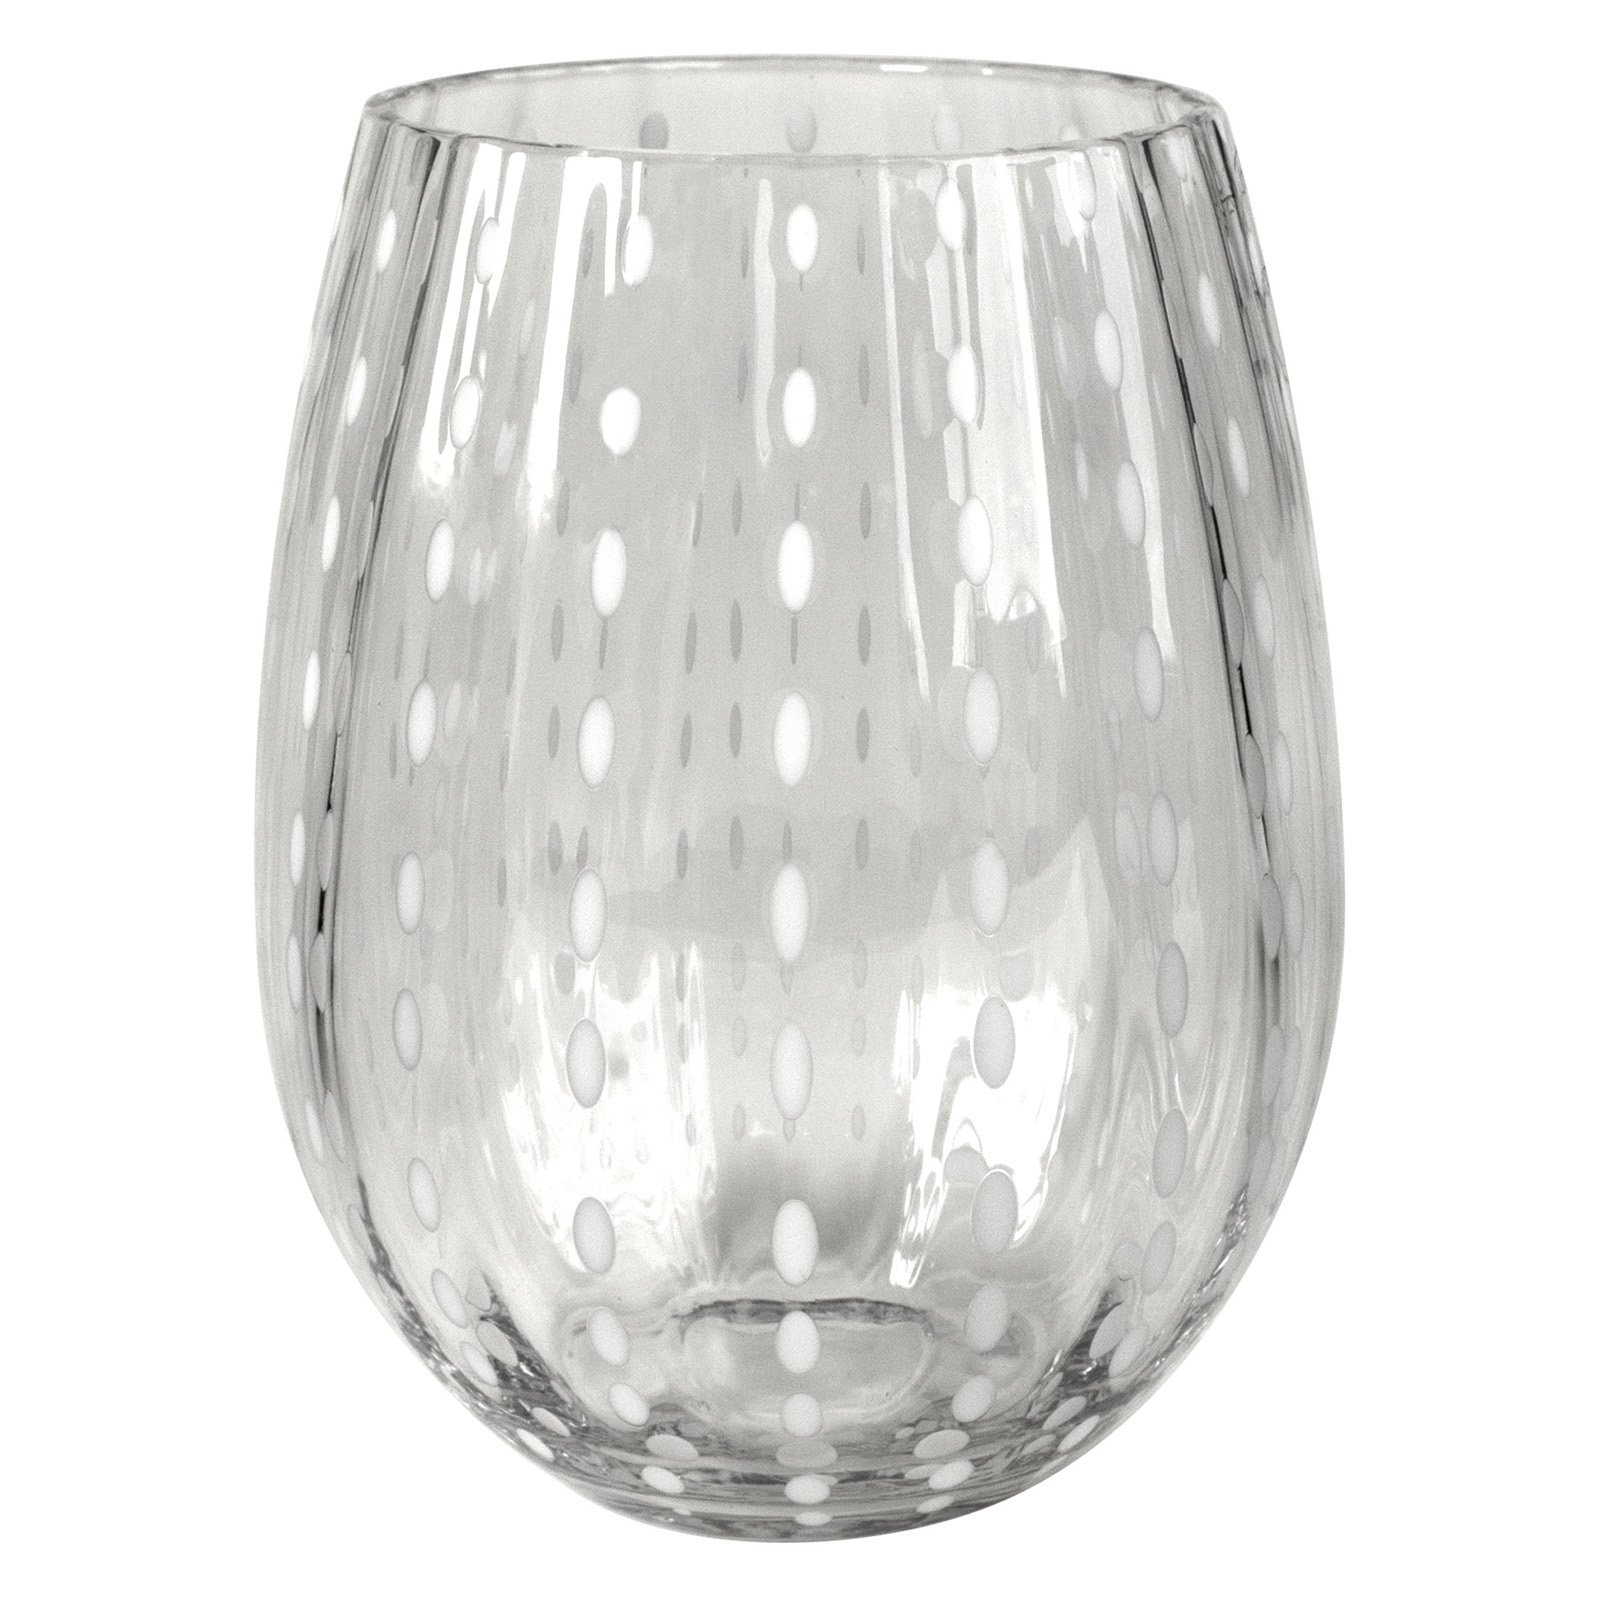 Artland Inc. Clear Cambria Stemless Tumbler - Set of 4